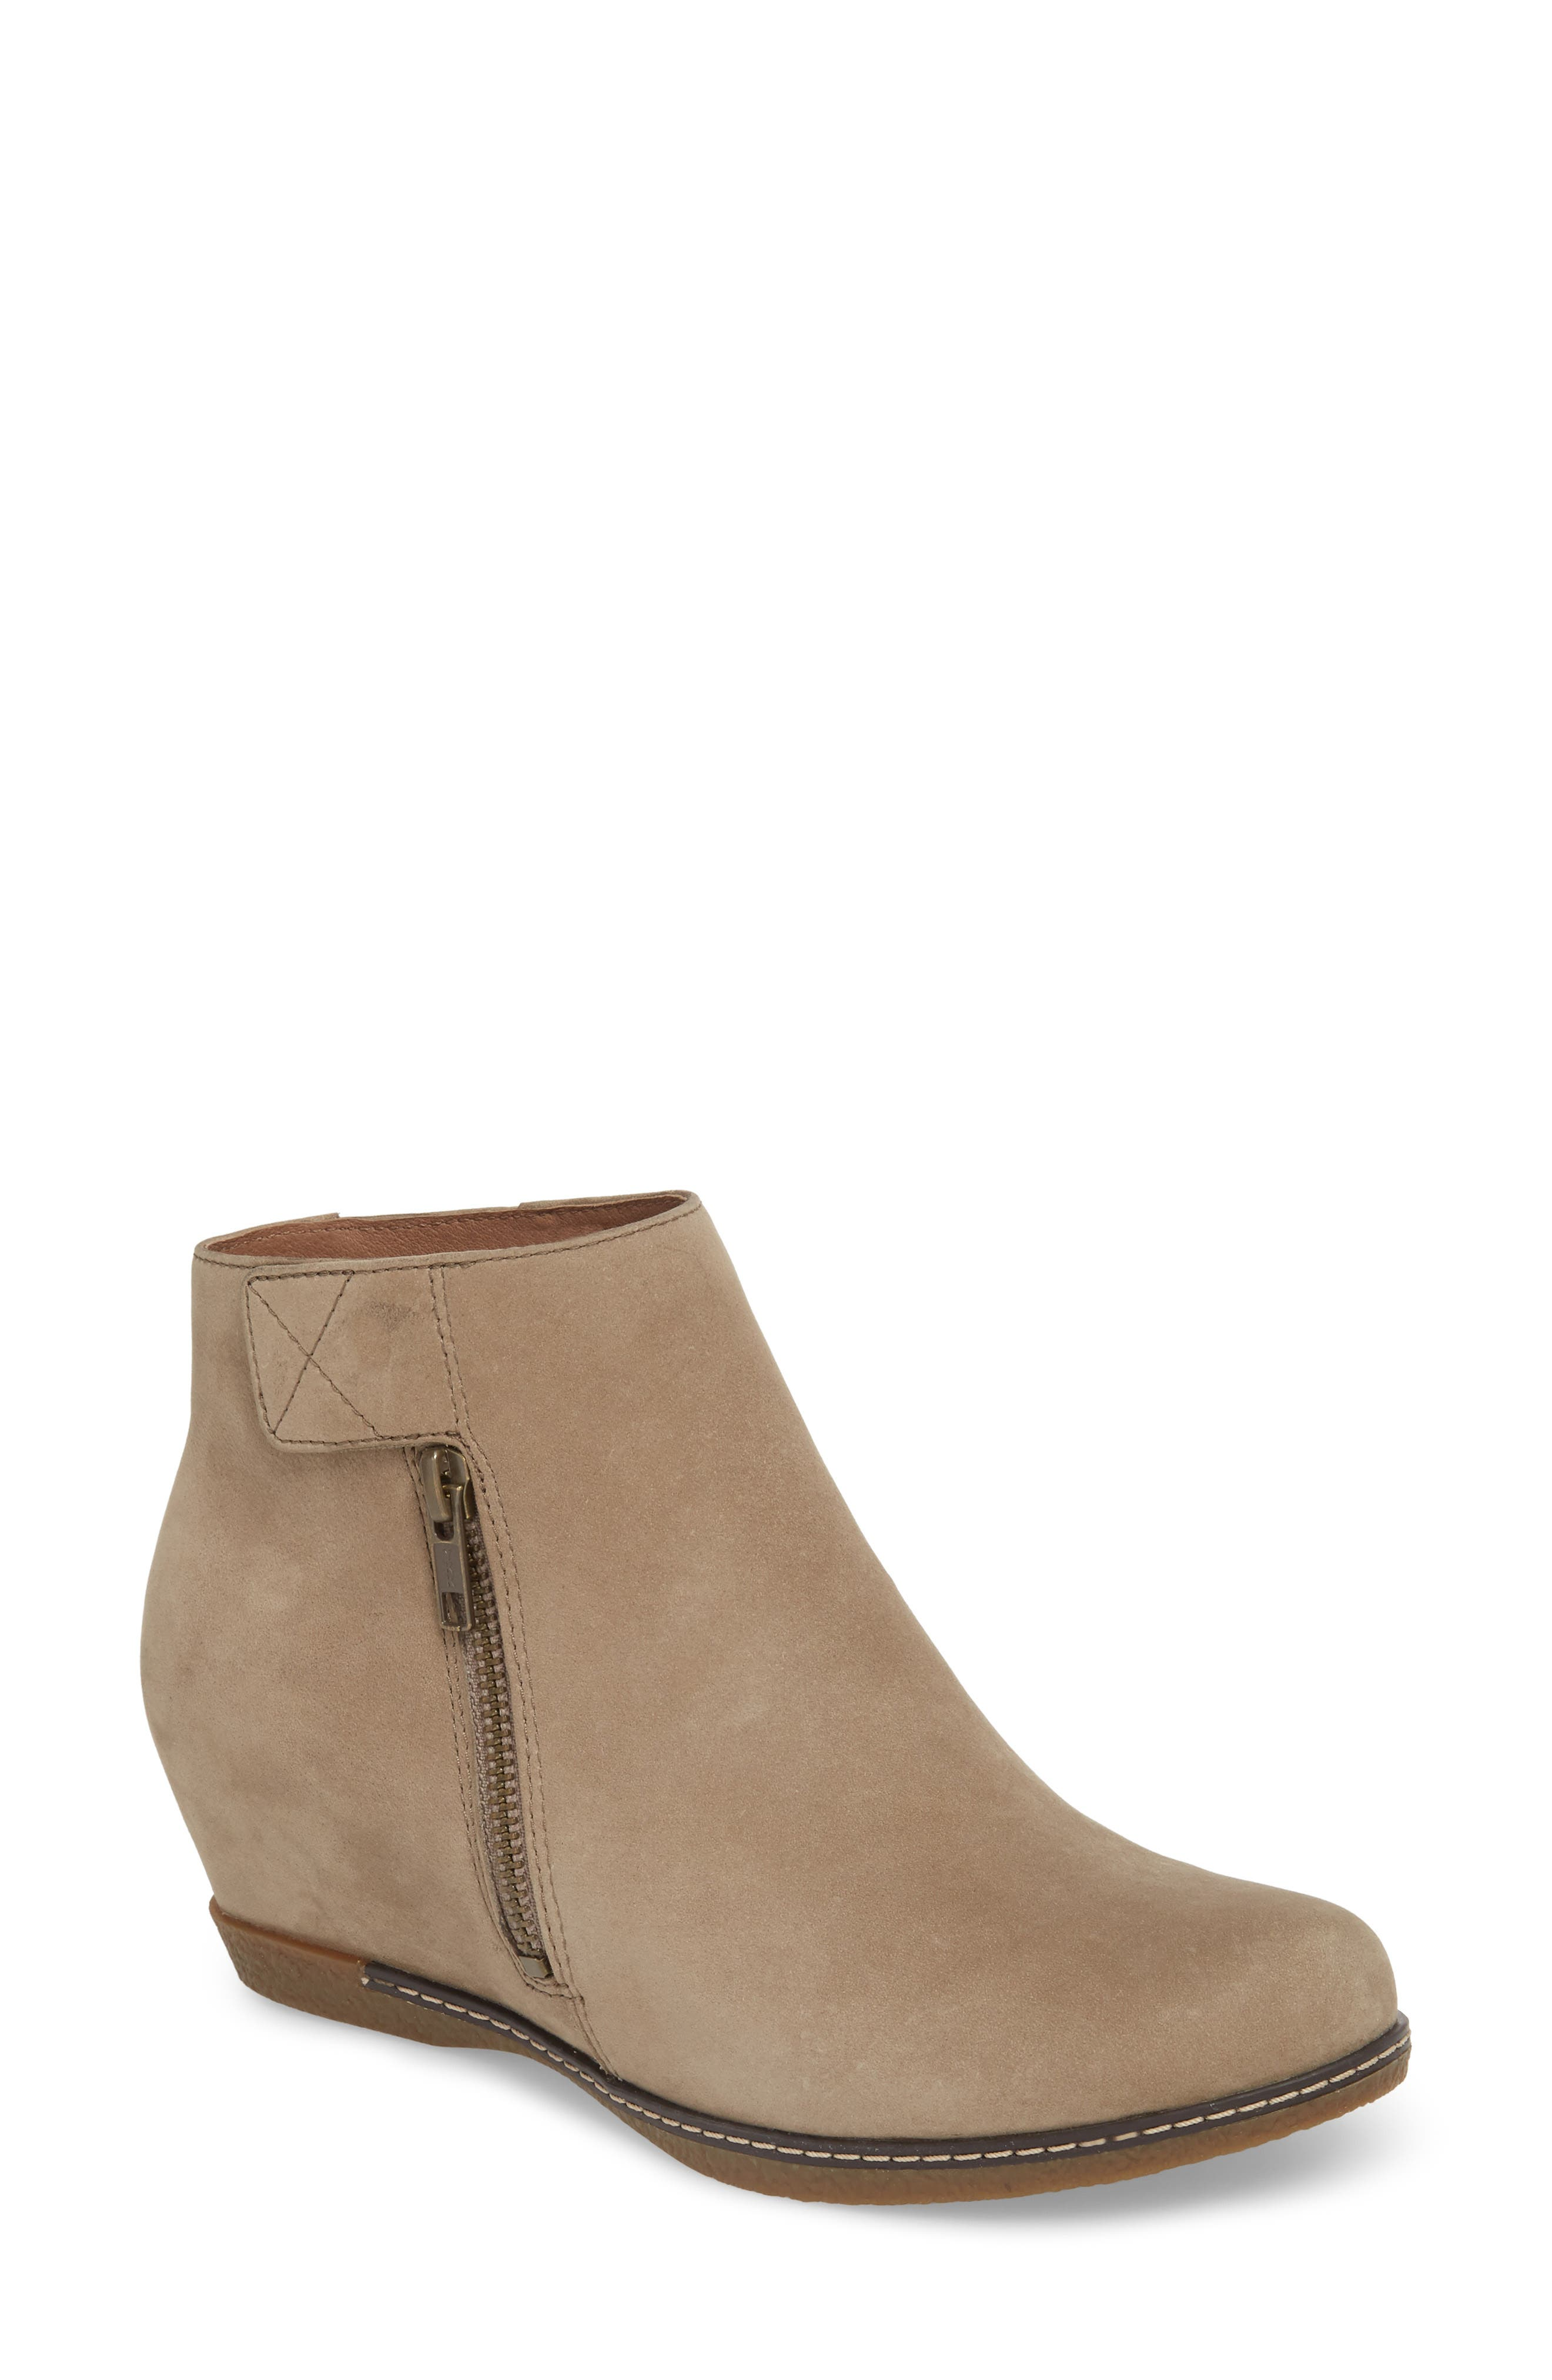 Leanna Bootie,                         Main,                         color, Taupe Burnished Nubuck